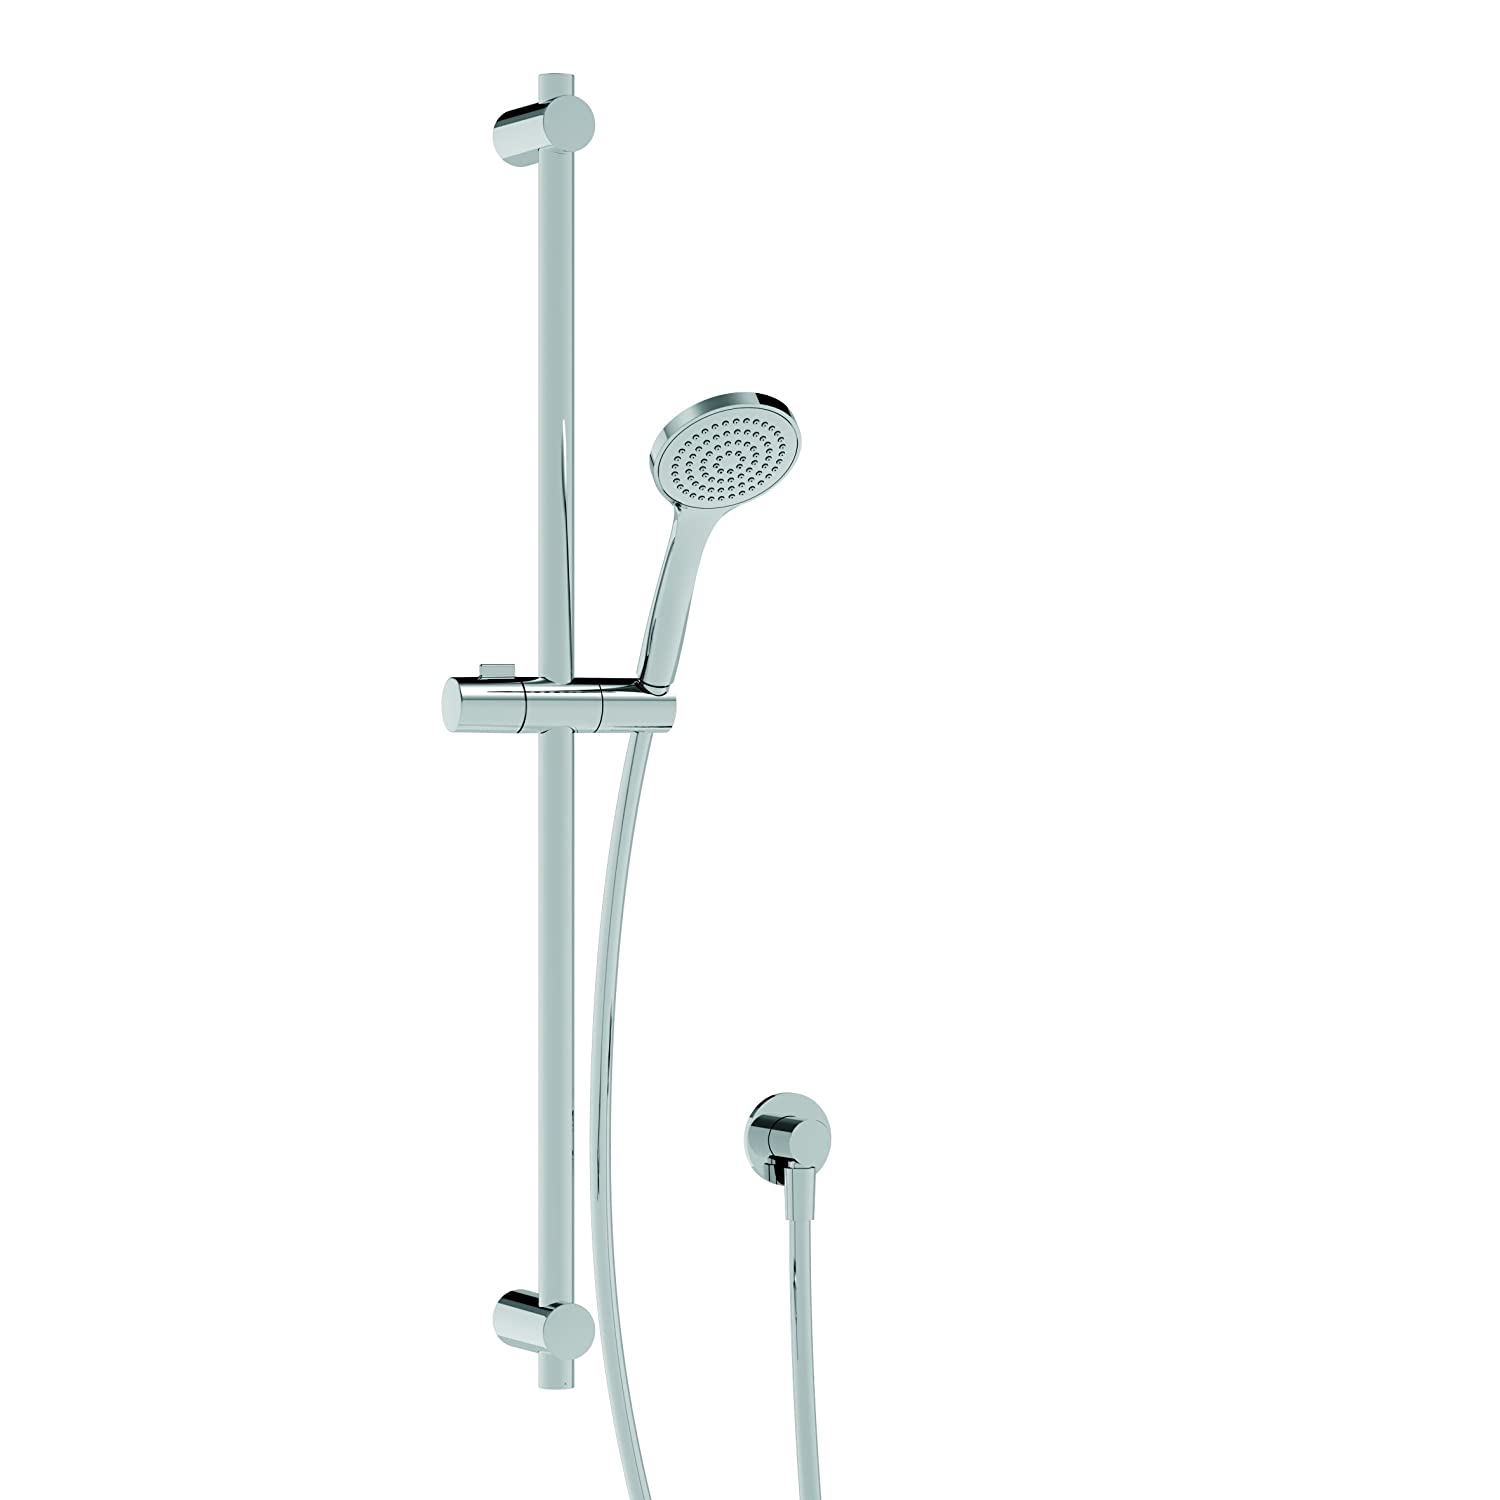 Mixer Bathroom Taps The Tower italia150 Riser Complete Water Socket and doccettacromo